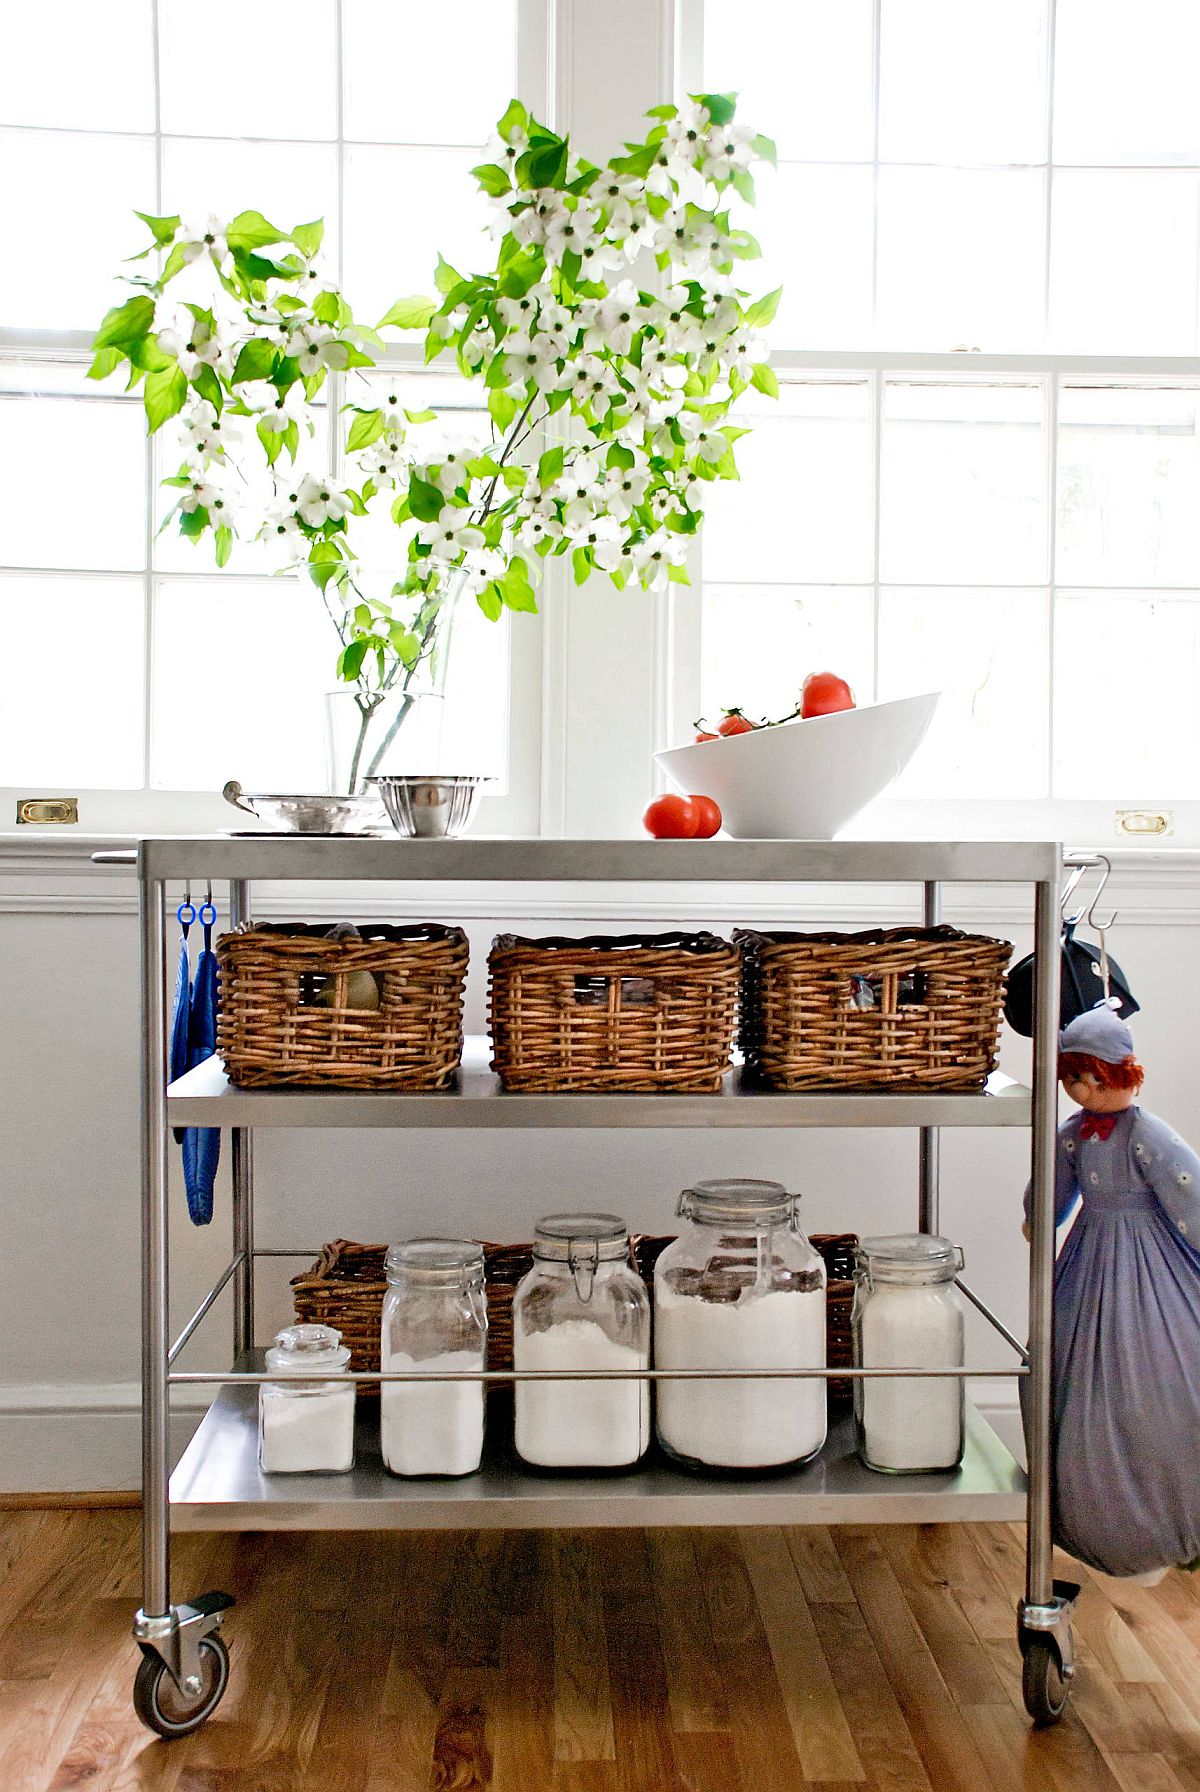 Turn that dashing bar cart into a smart island that is adaptable